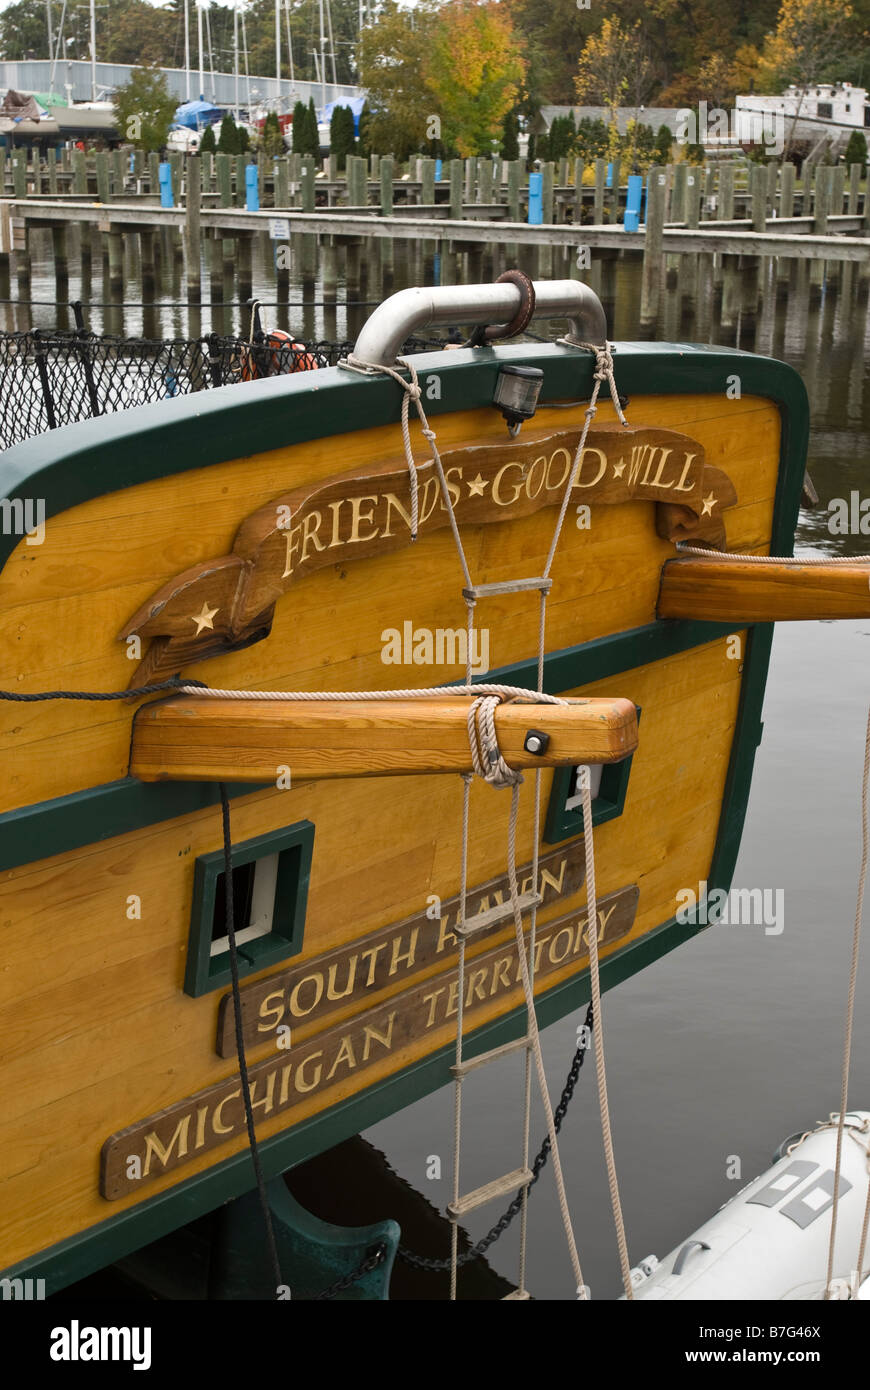 Friends Good Will, Michigan Maritime Museum in South Haven, Michigan, USA. - Stock Image